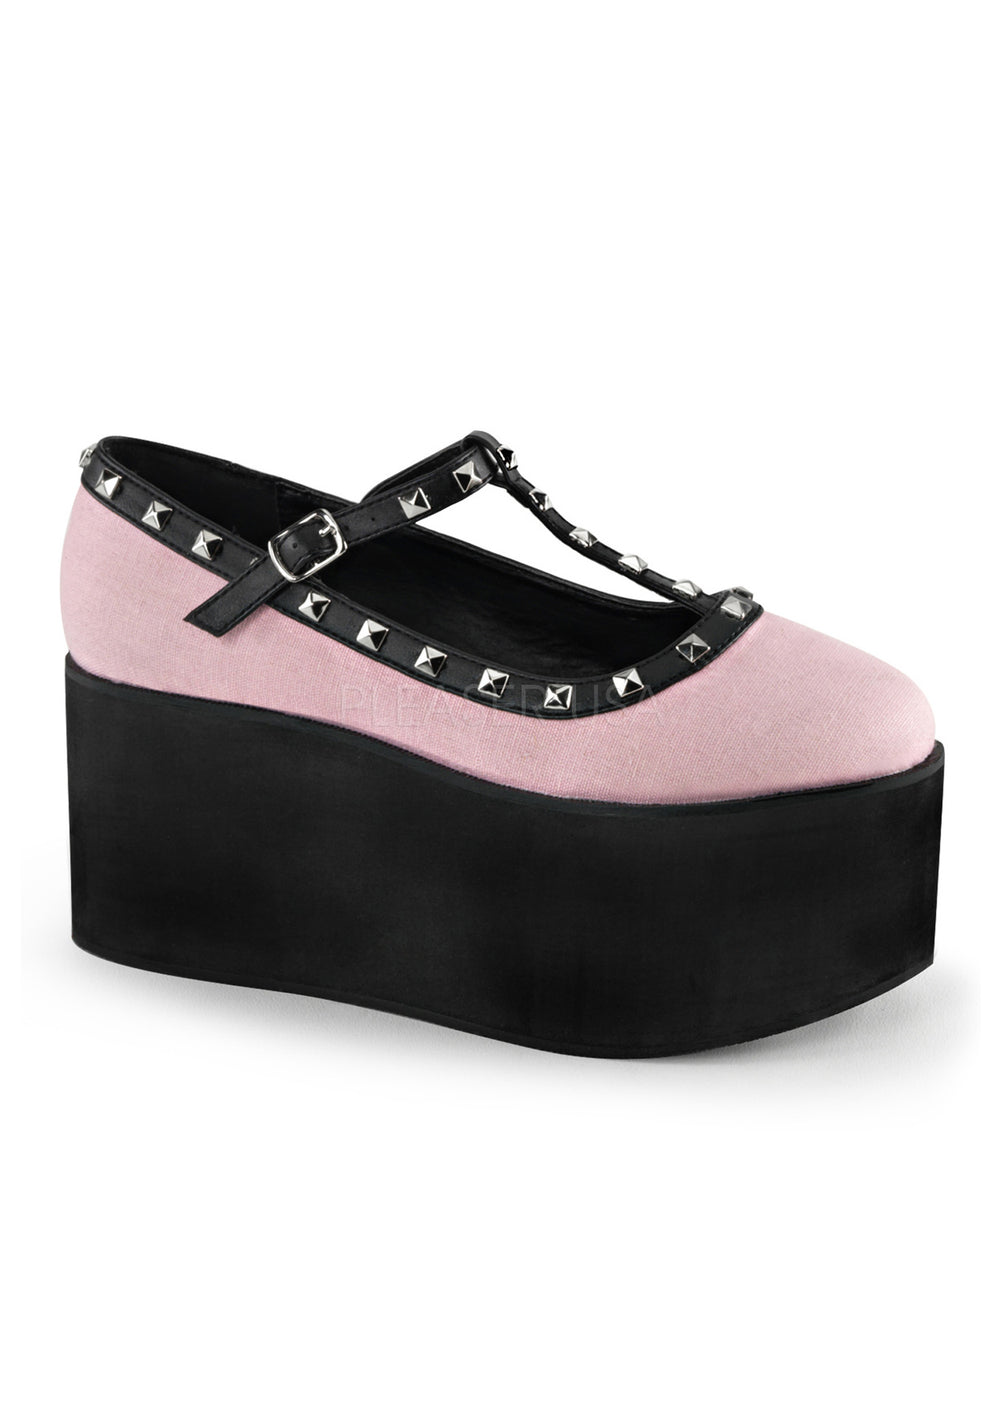 Vintage Pink Mary Jane Platforms